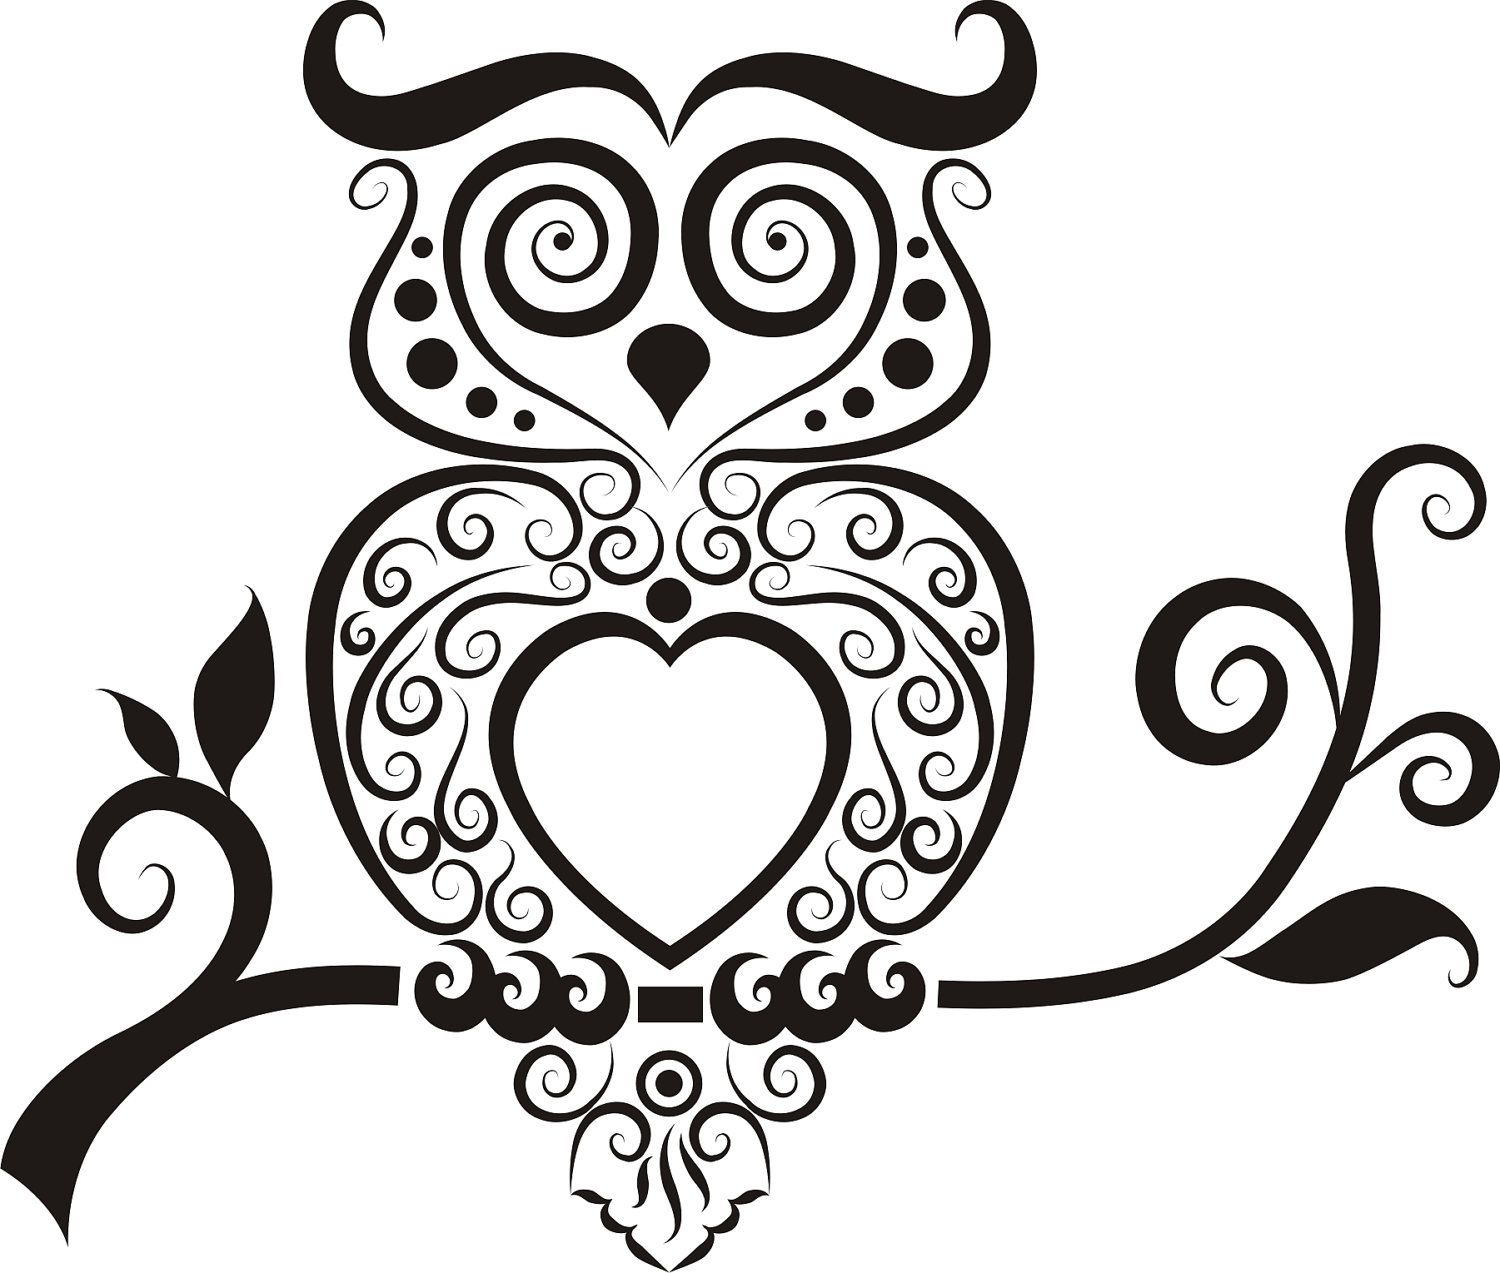 Owl Decal Owl Wall Decal Owl Tatoo Decal Owl Sticker by SBLDesign $24.99  sc 1 st  Pinterest & Owl Decal Owl Wall Decal Owl Tatoo Decal Owl Sticker by SBLDesign ...